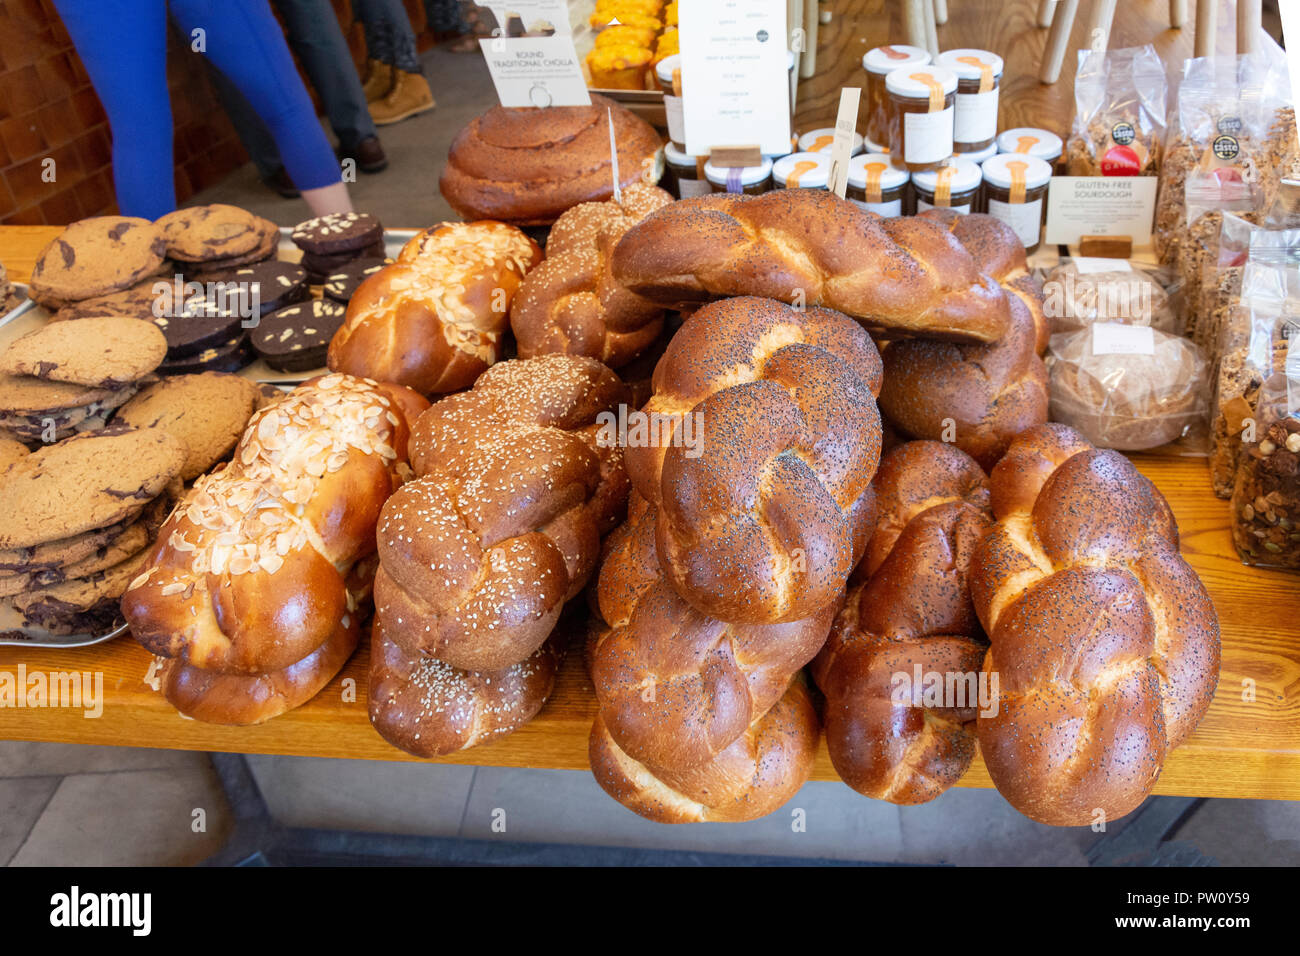 Bread and biscuit selection in patisserie, Salusbury Road, Queen's Park, London Borough of Brent, Greater London, England, United Kingdom - Stock Image